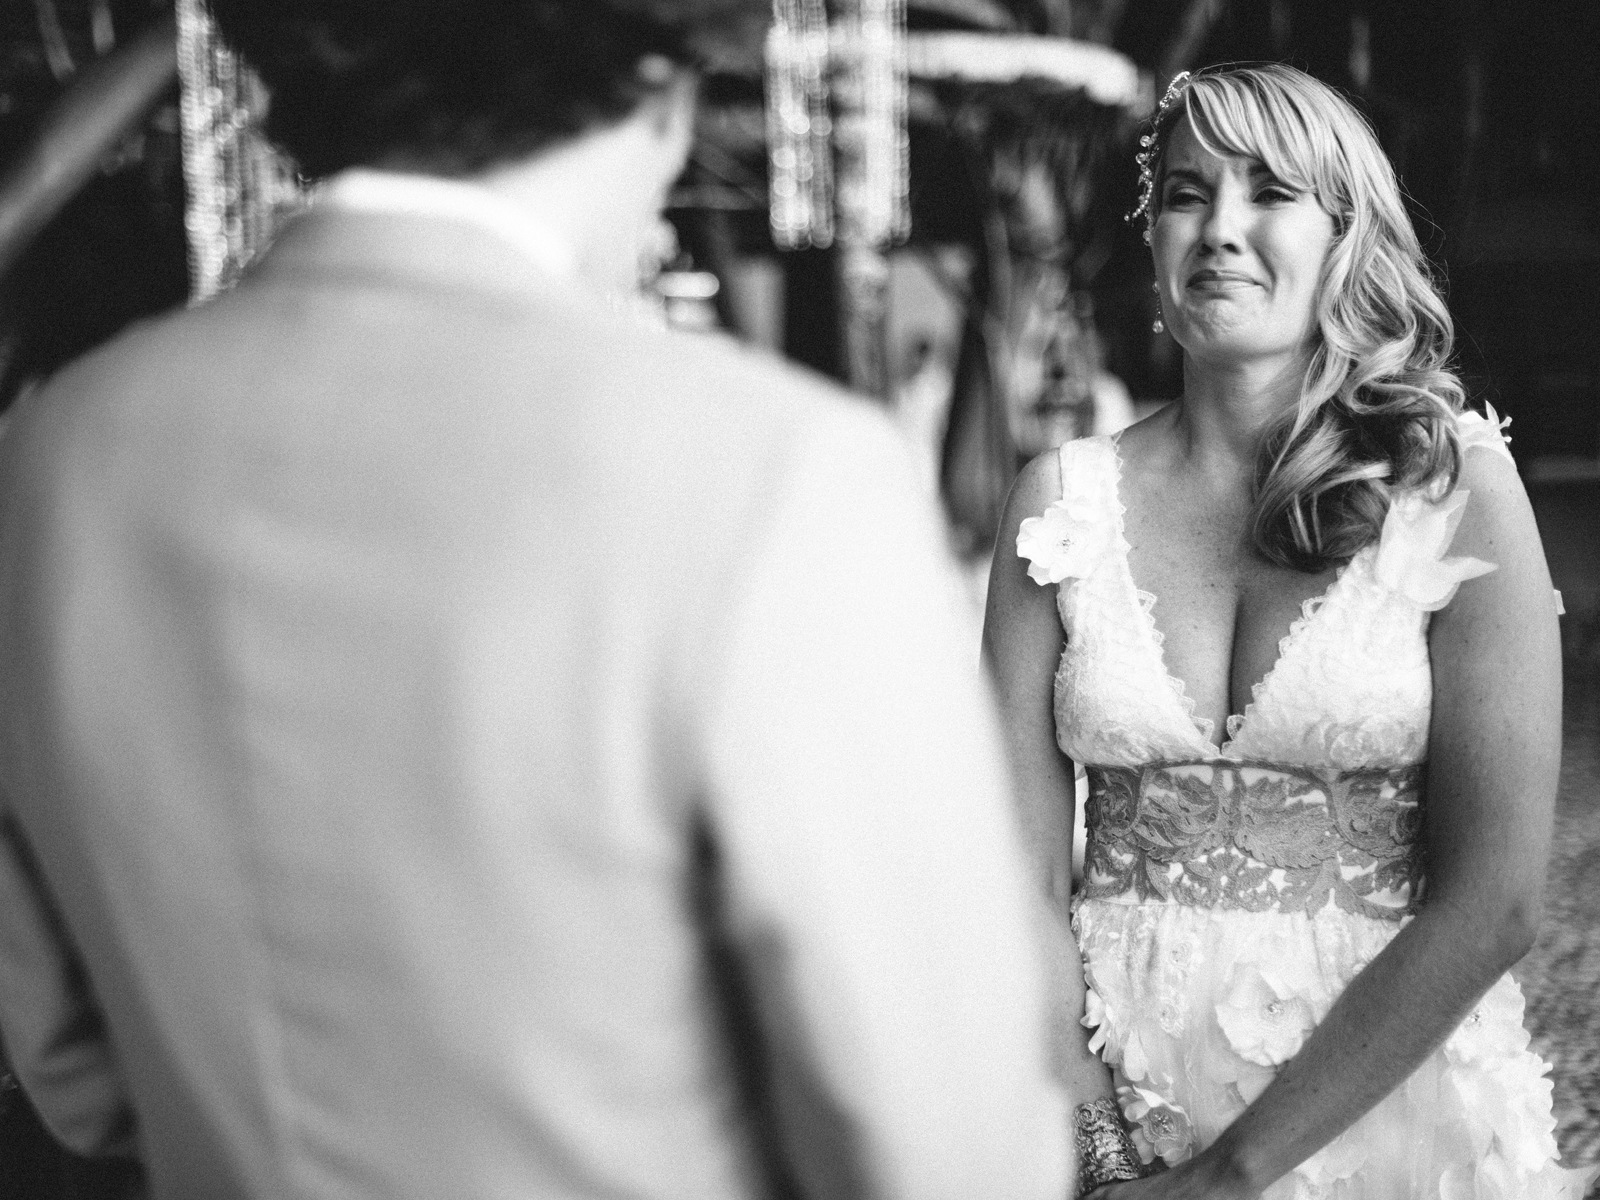 carreyes_wedding_photographer_017.jpg